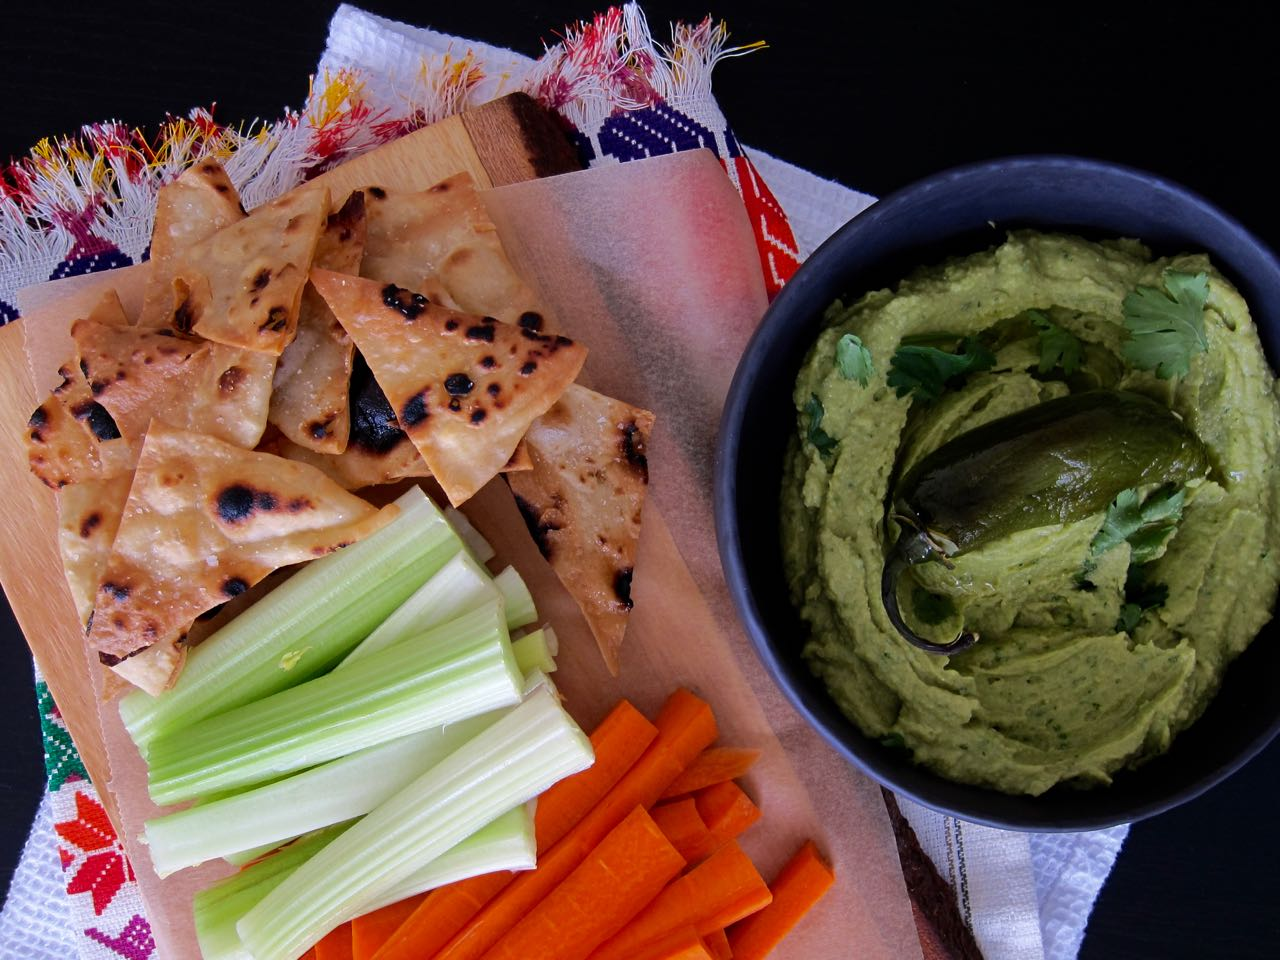 spicy avocado hummus with dippers